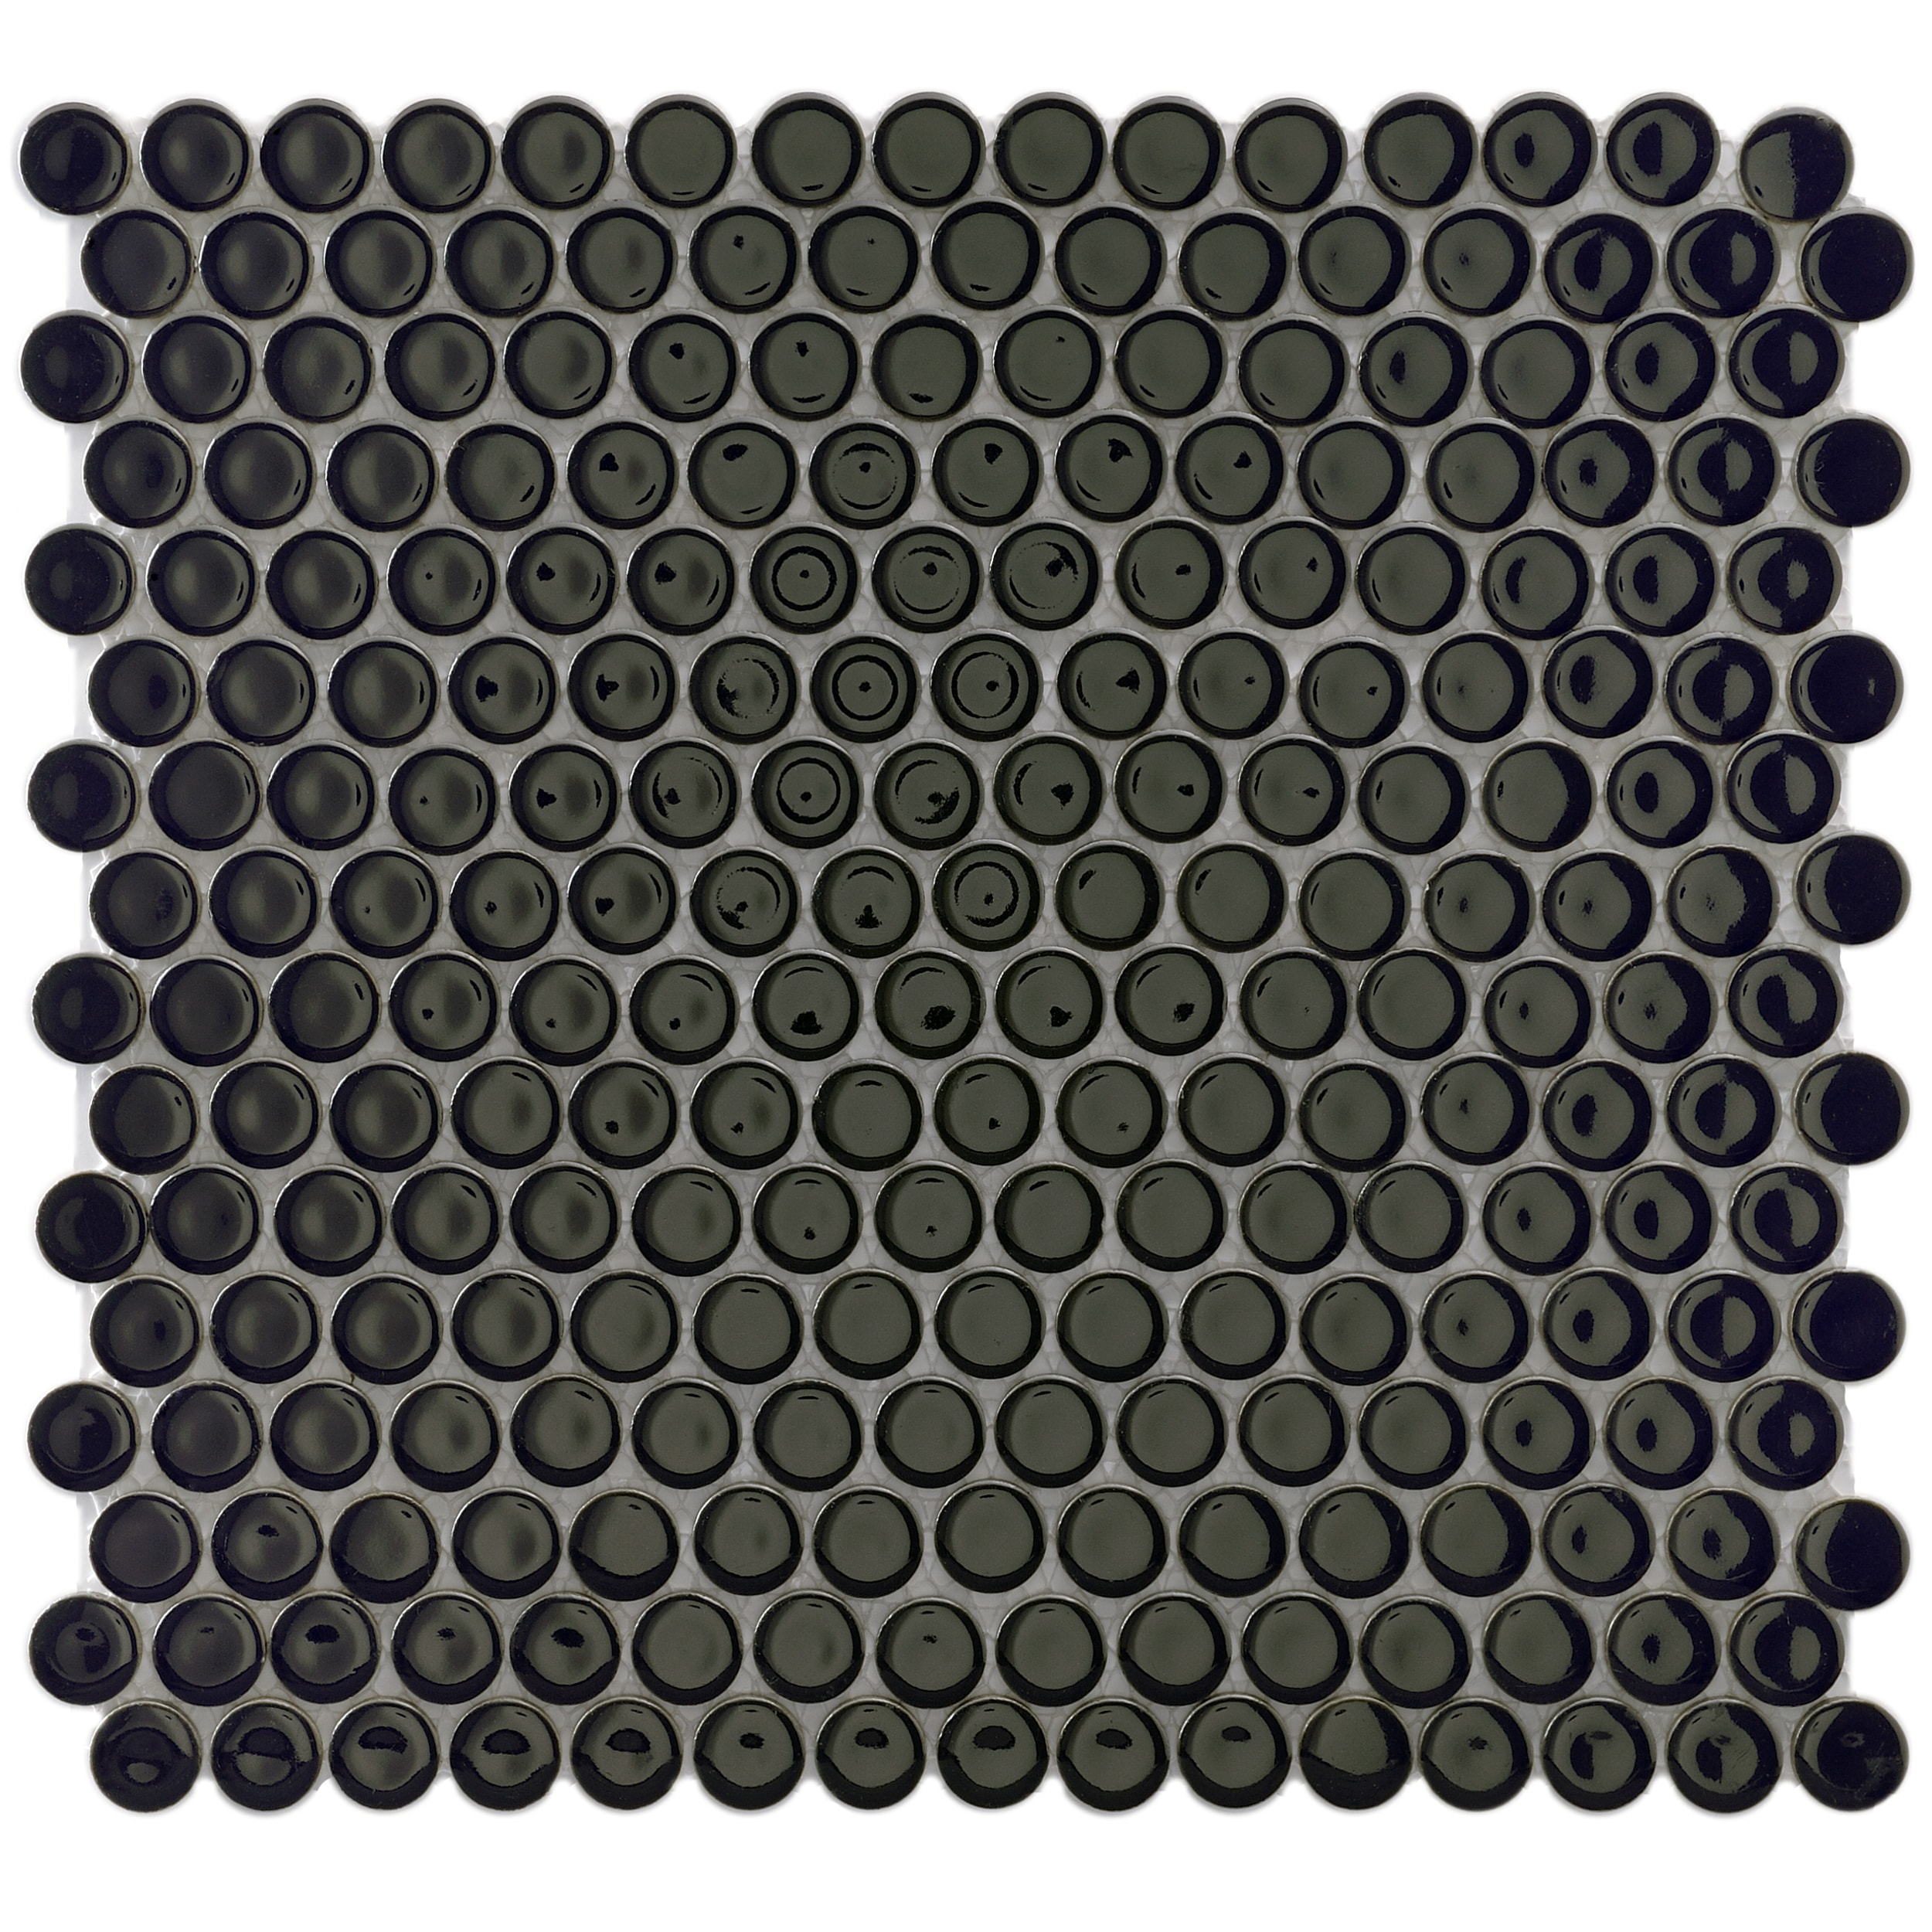 Overstock.com SomerTile 12.25x12-in Penny 3/4-in Black Porcelain Mosaic Tile (Pack of 10) at Sears.com